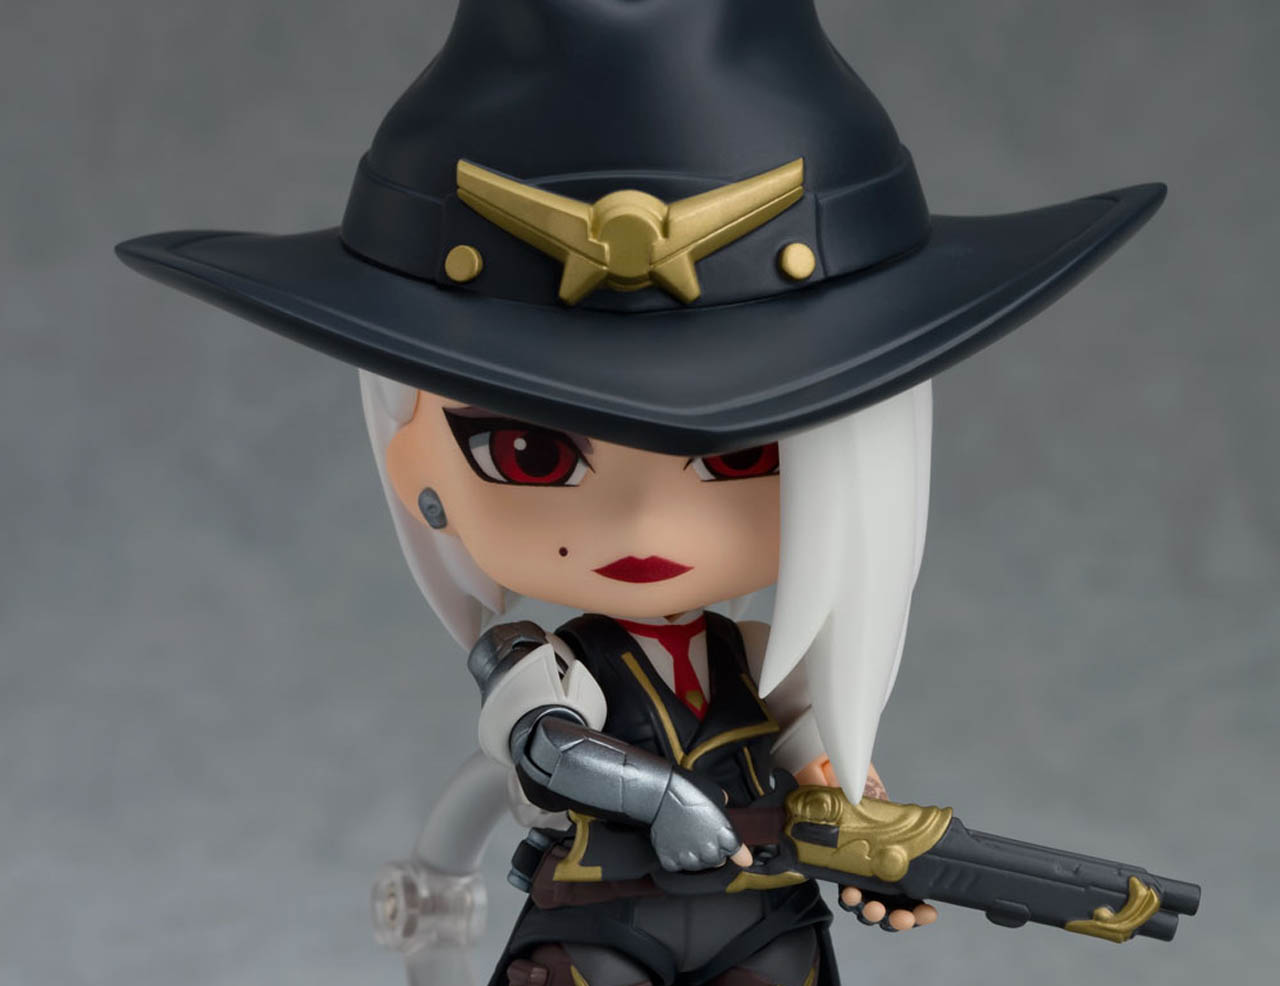 Nendroid Ashe - Blizzard Overwatch Good Smile Company